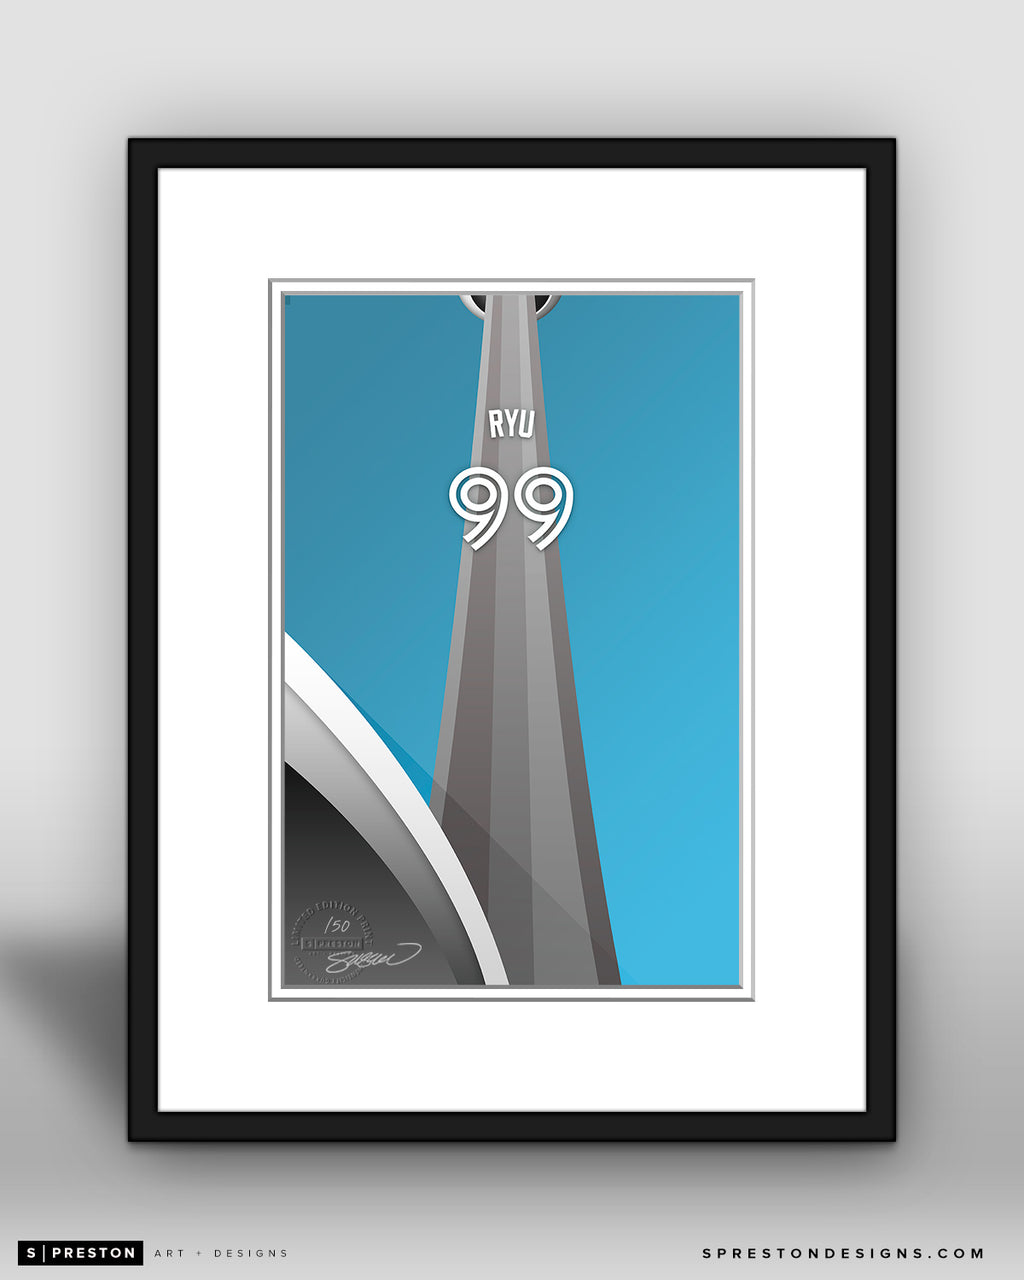 Minimalist Rogers Centre - Player Series - Hyun-Jin Ryu - Toronto Blue Jays - S. Preston